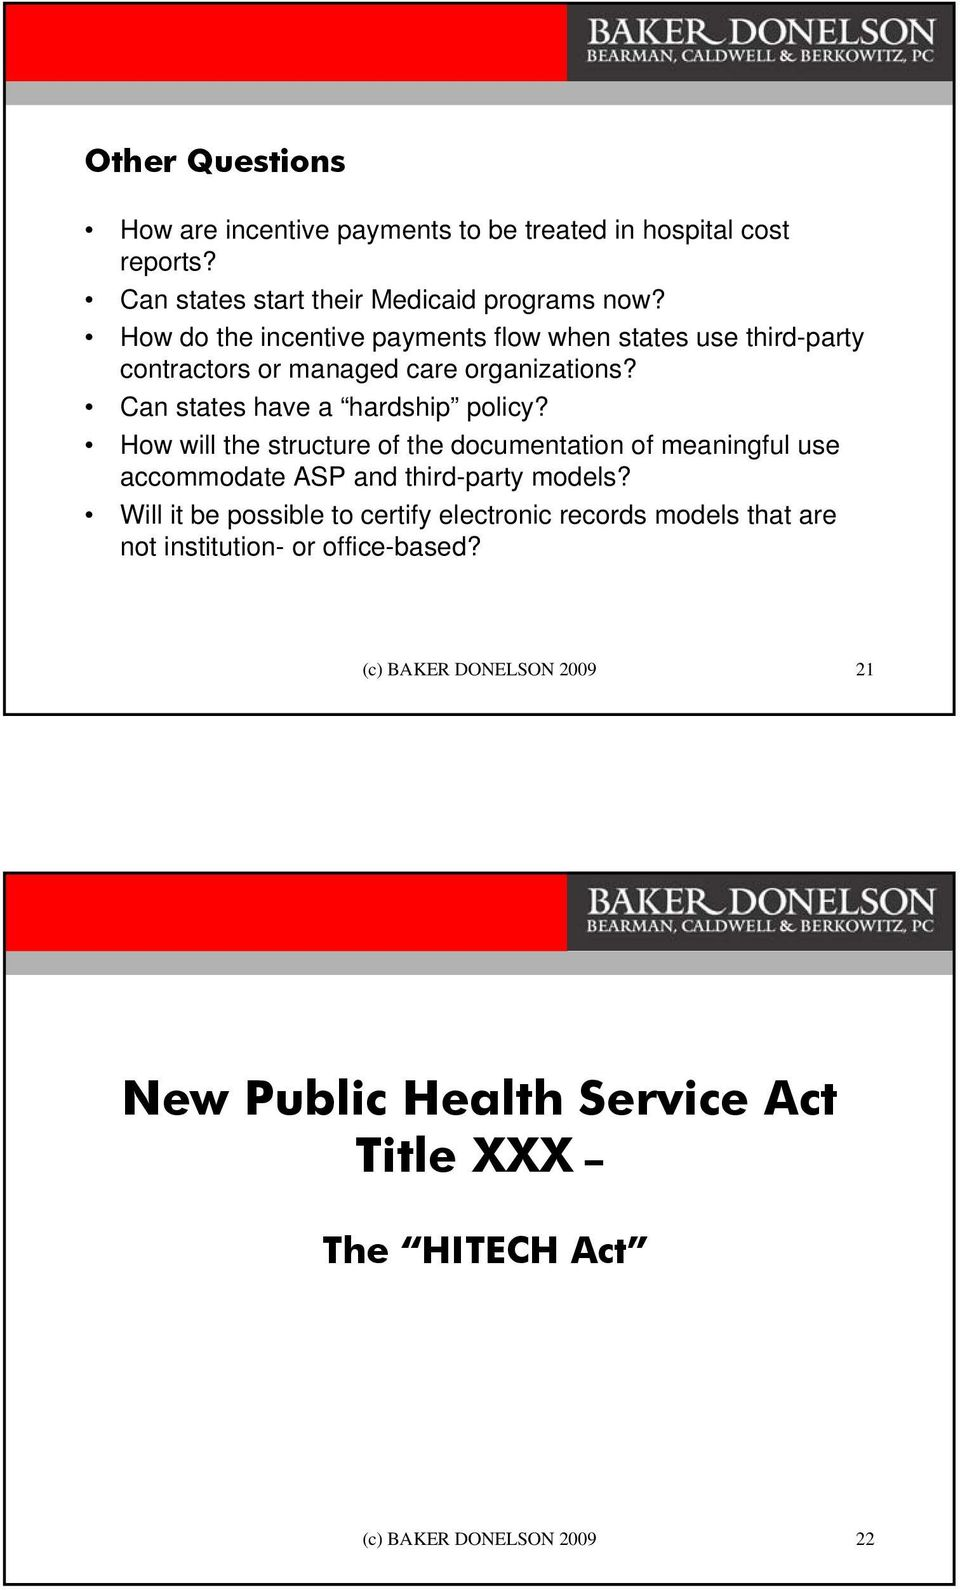 How will the structure of the documentation of meaningful use accommodate ASP and third-party models?